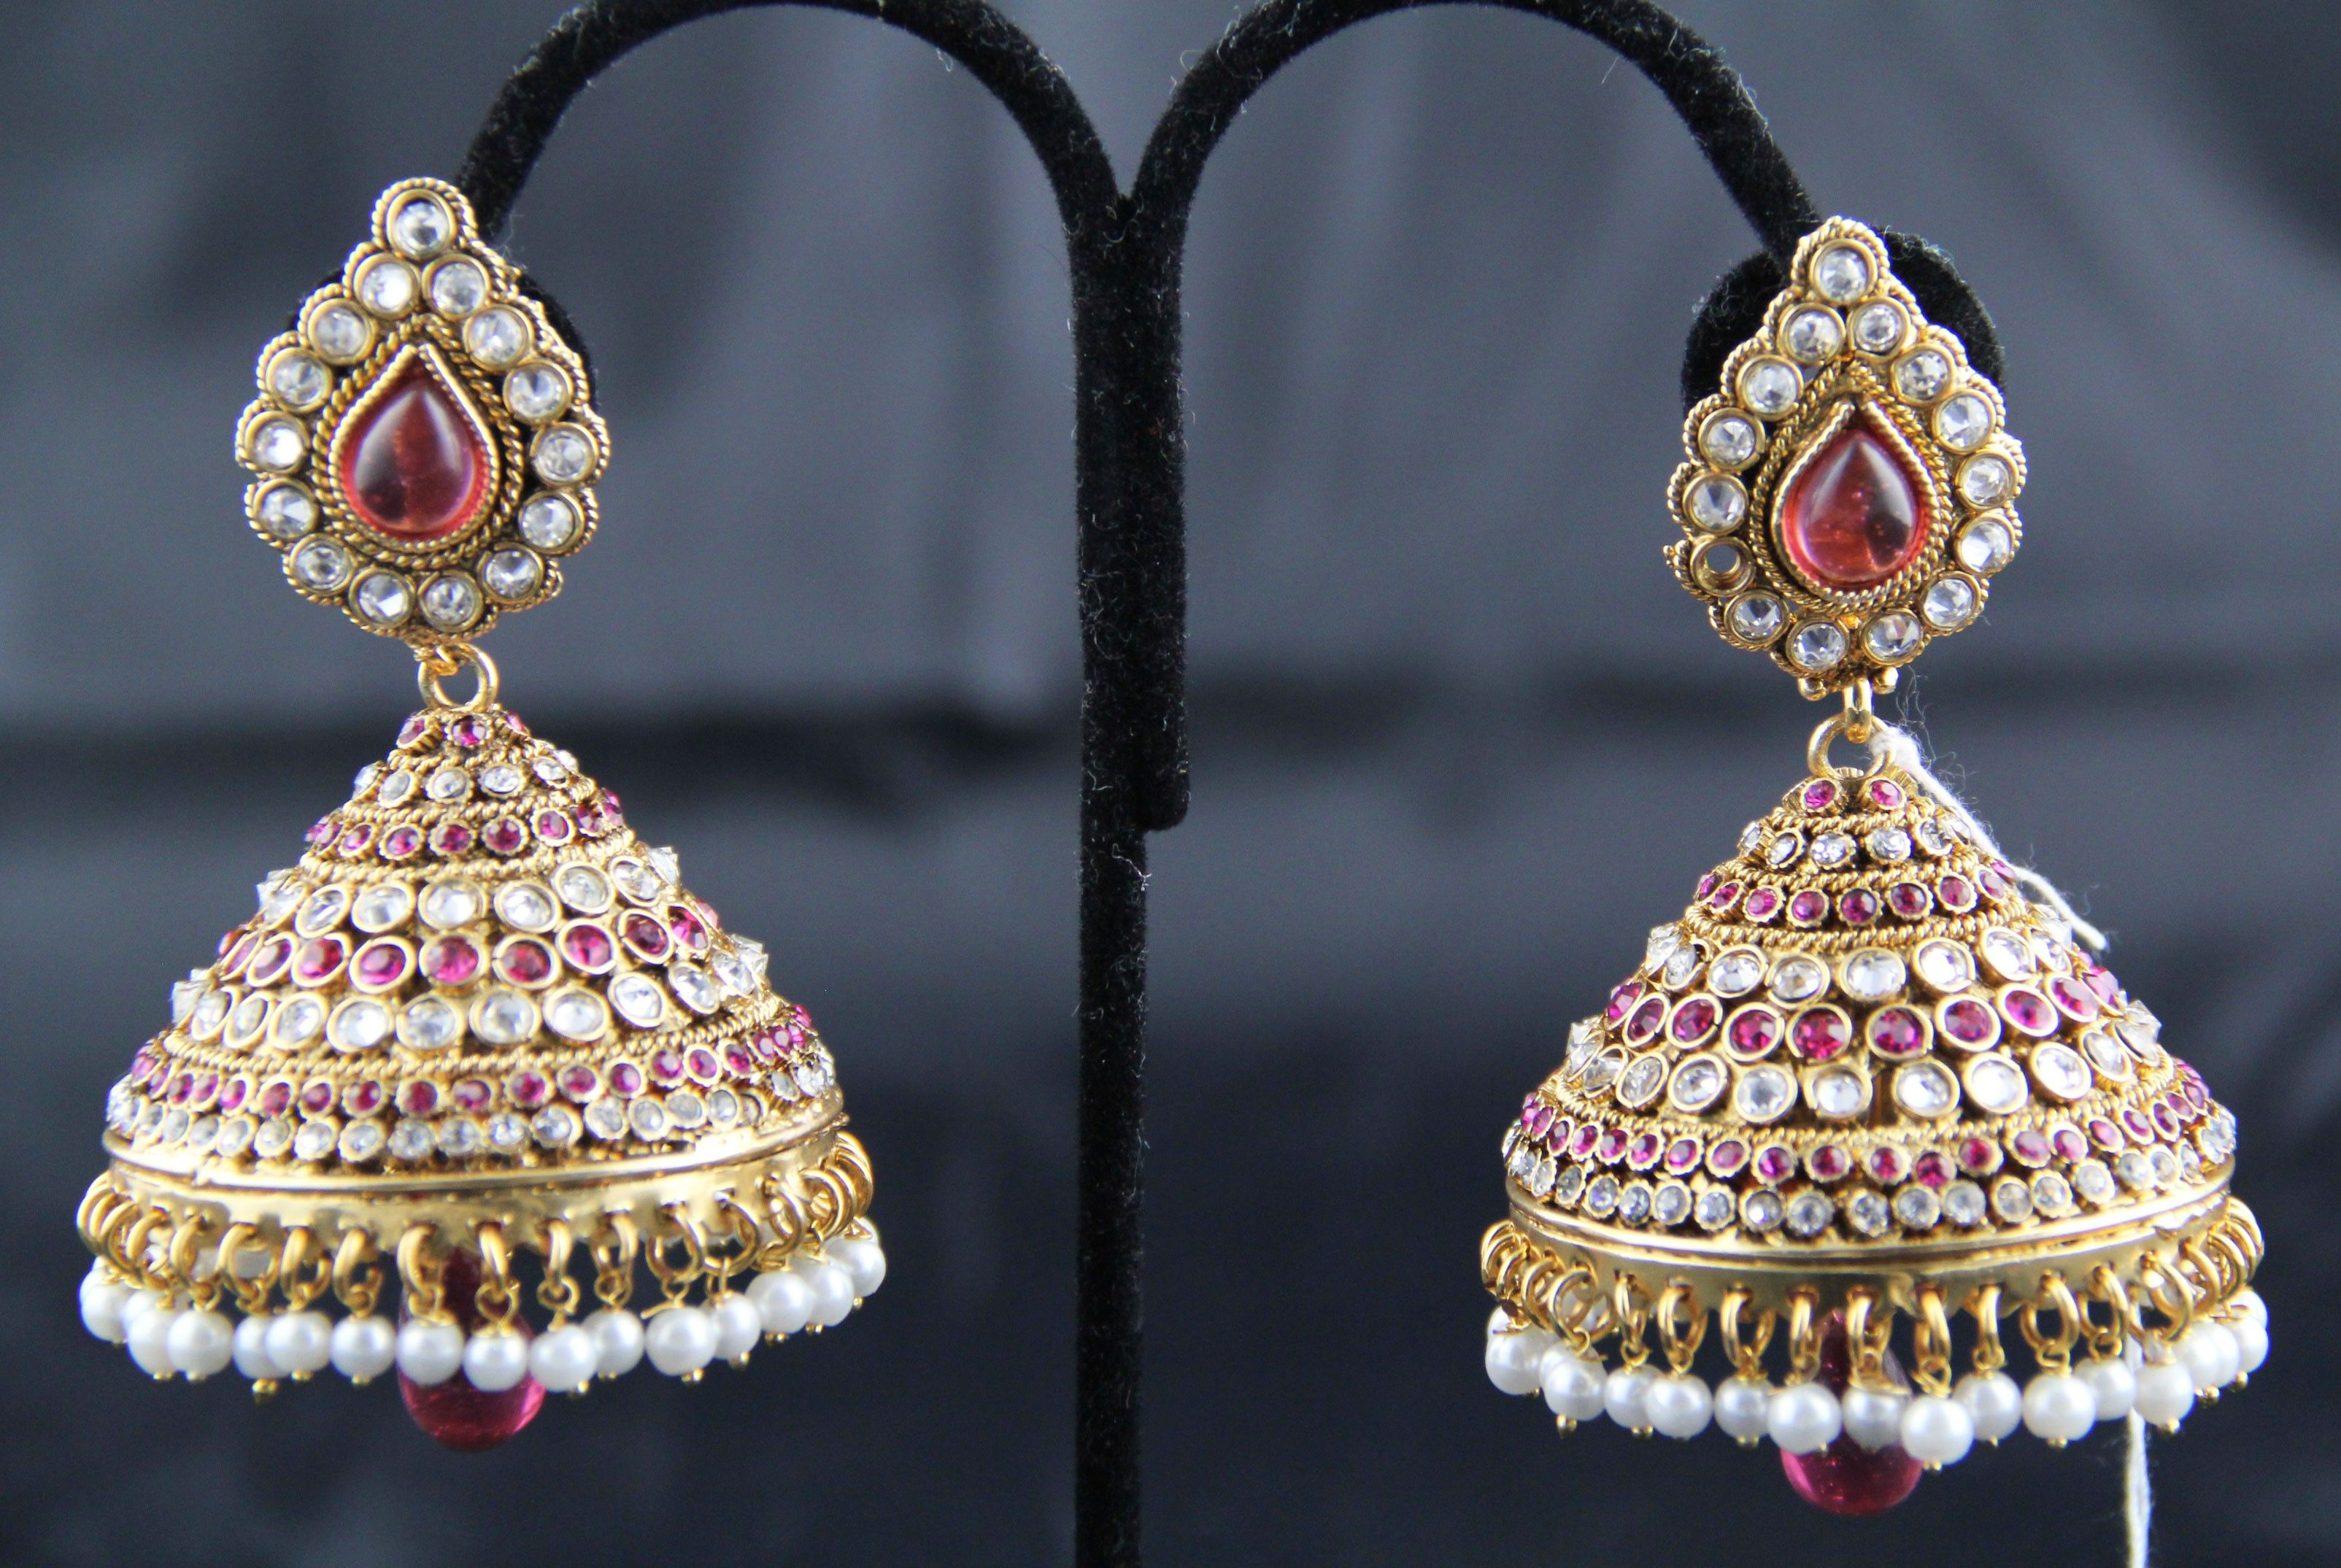 indian jewelry jhumka earrings | Accessories | Pinterest | Indian ...